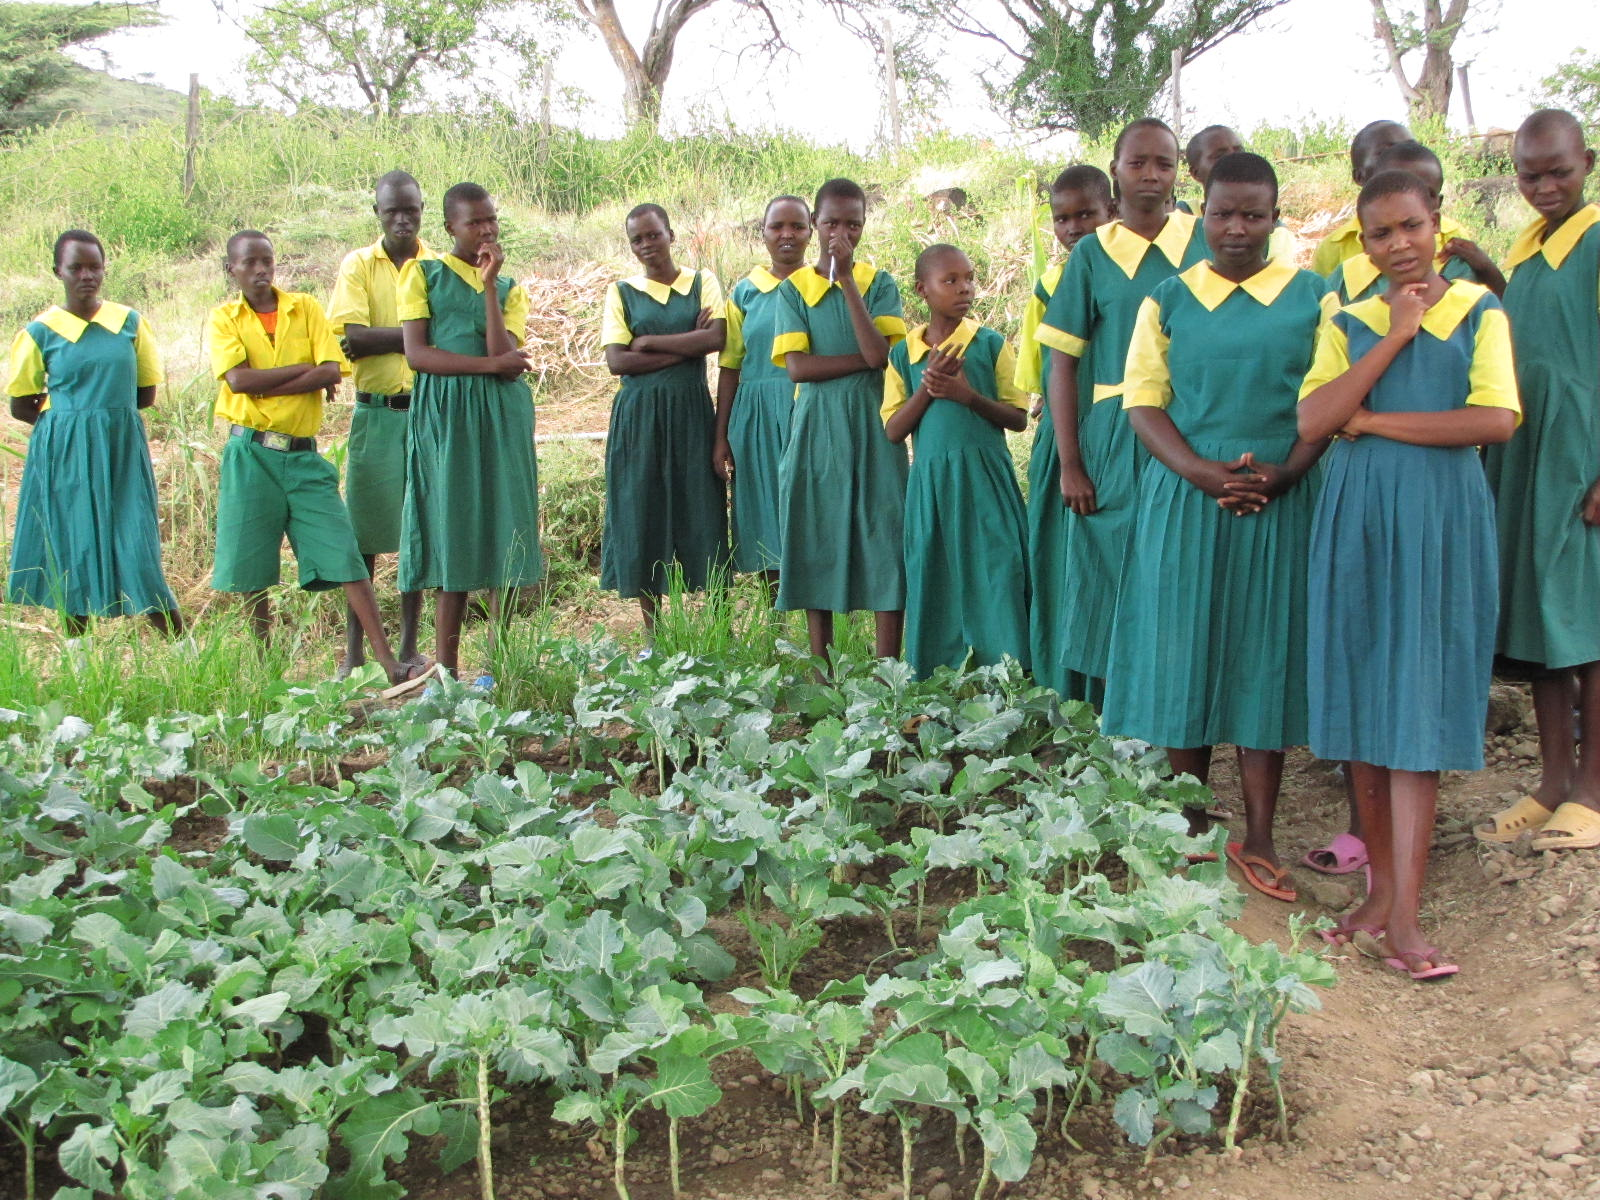 Kokwa Primary School garden and gardeners